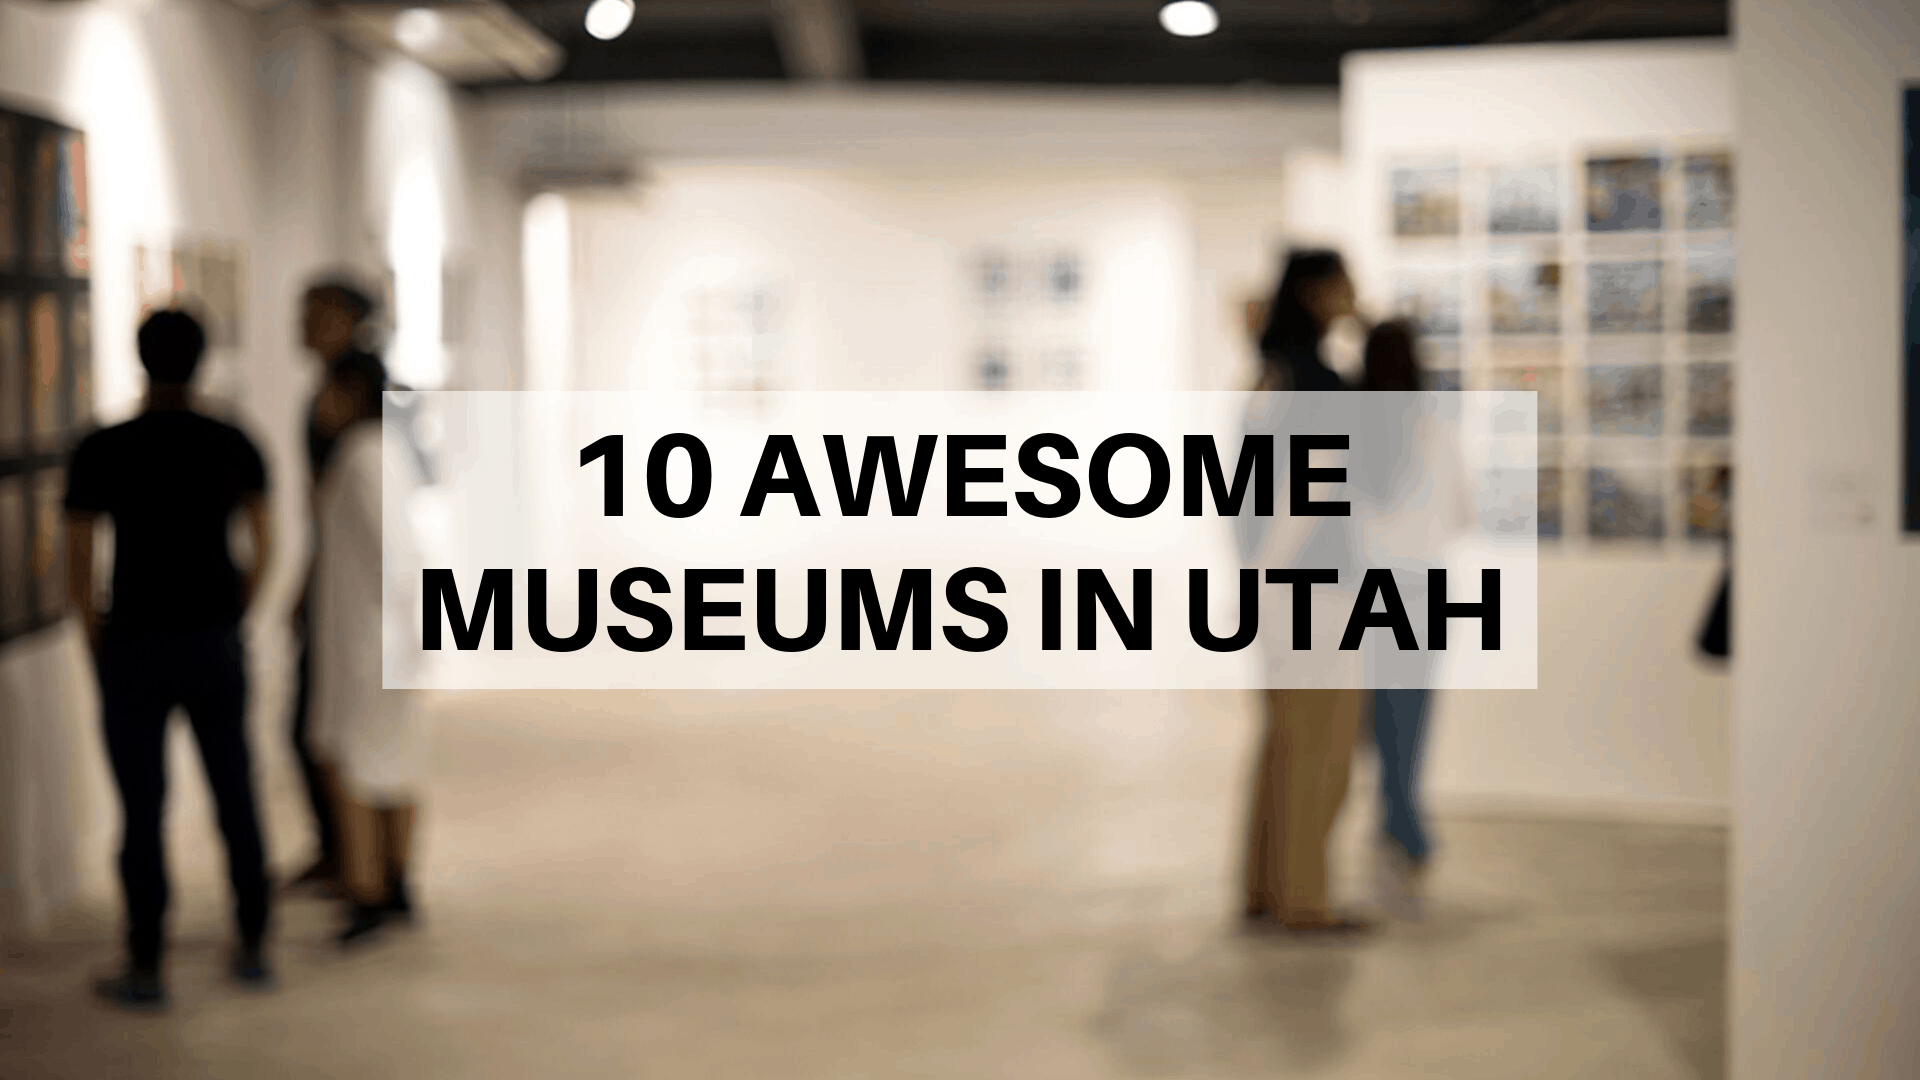 10 Awesome Museums in Utah